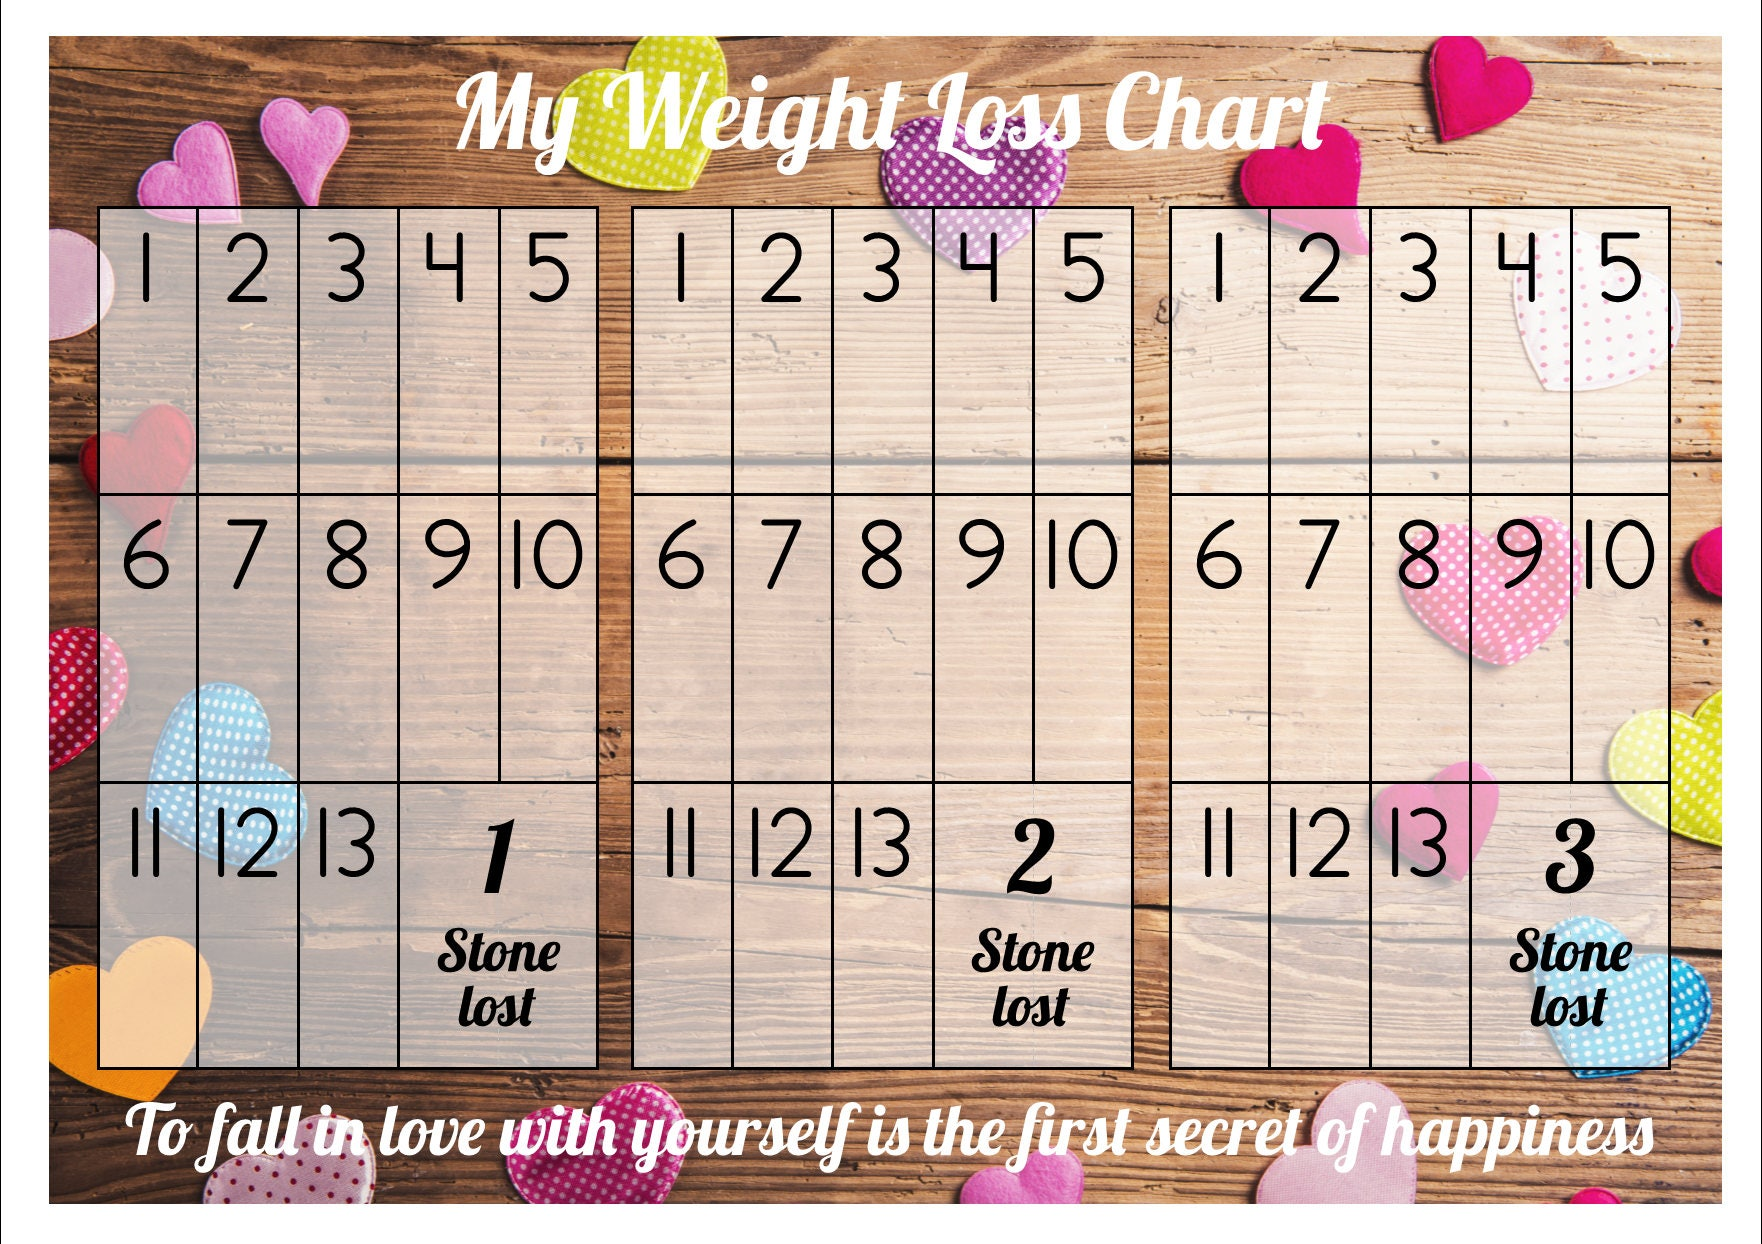 Weight loss chart tracker 3 stone comes with star description weight loss chart tracker nvjuhfo Images